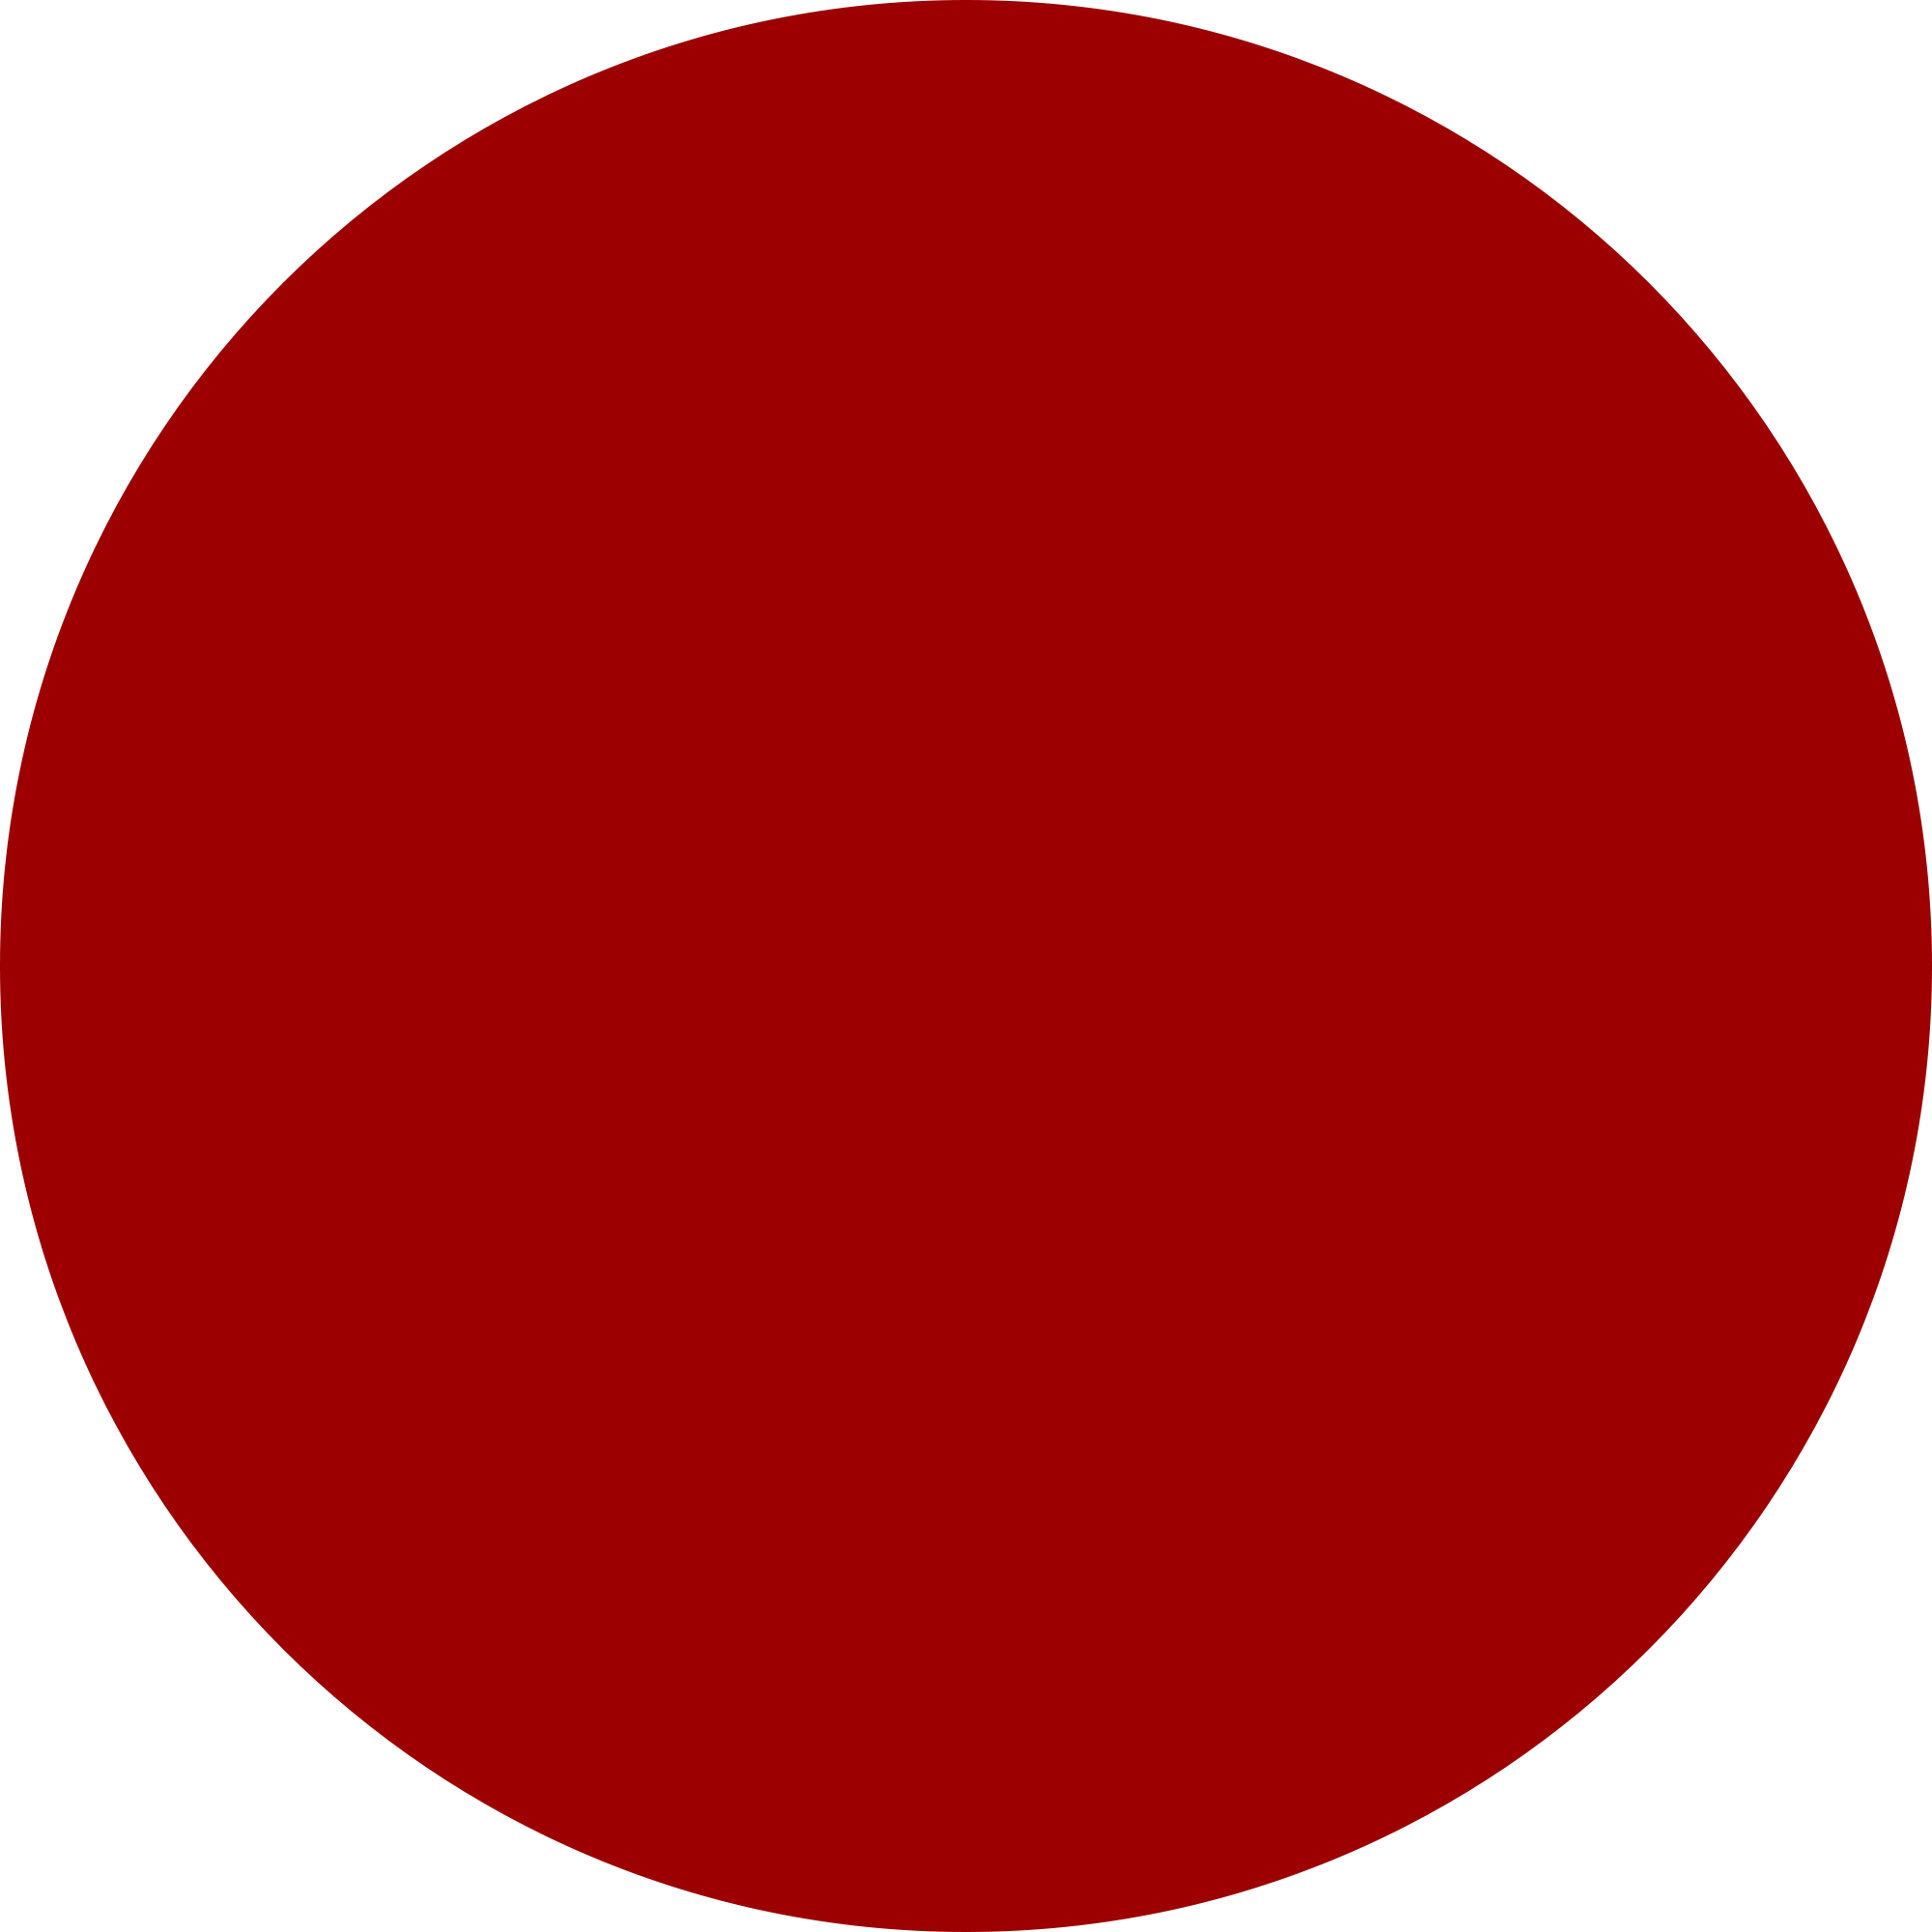 Dot clipart plain.  collection of red